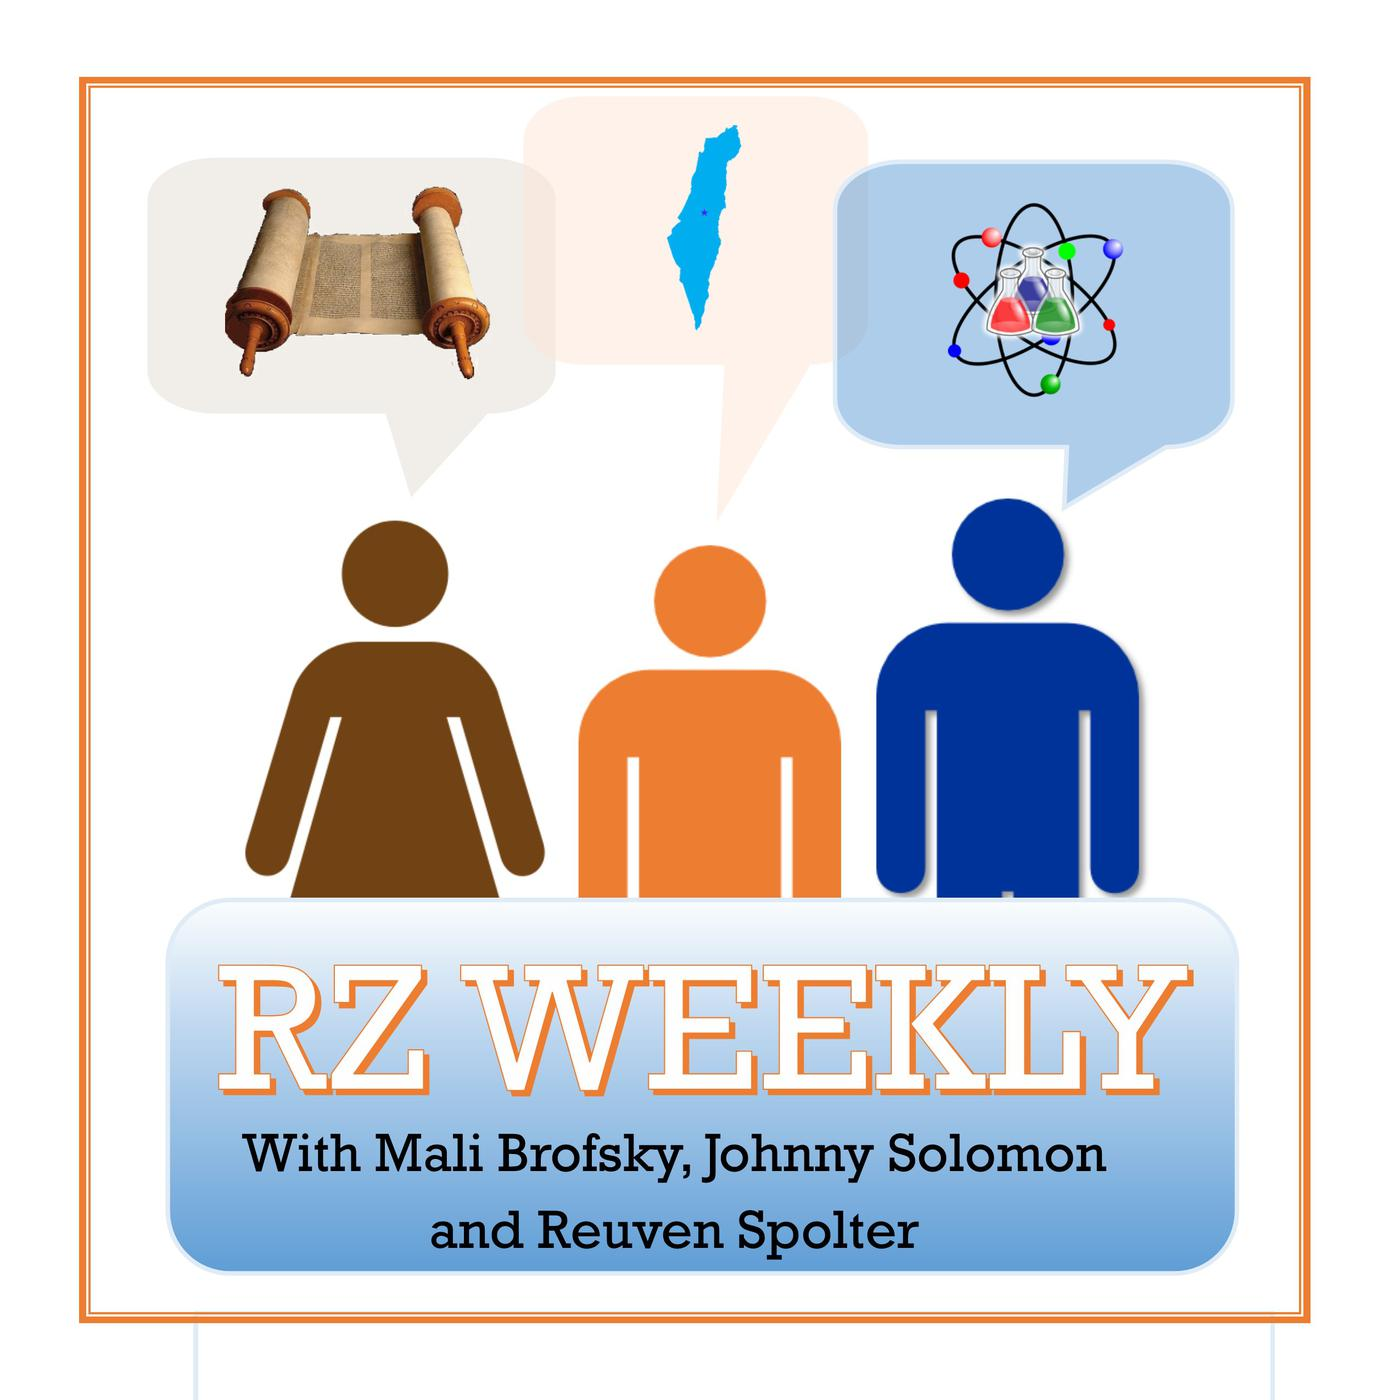 RZ Weekly (podcast) - Mali Brofsky, Johnny Solomon and Reuven